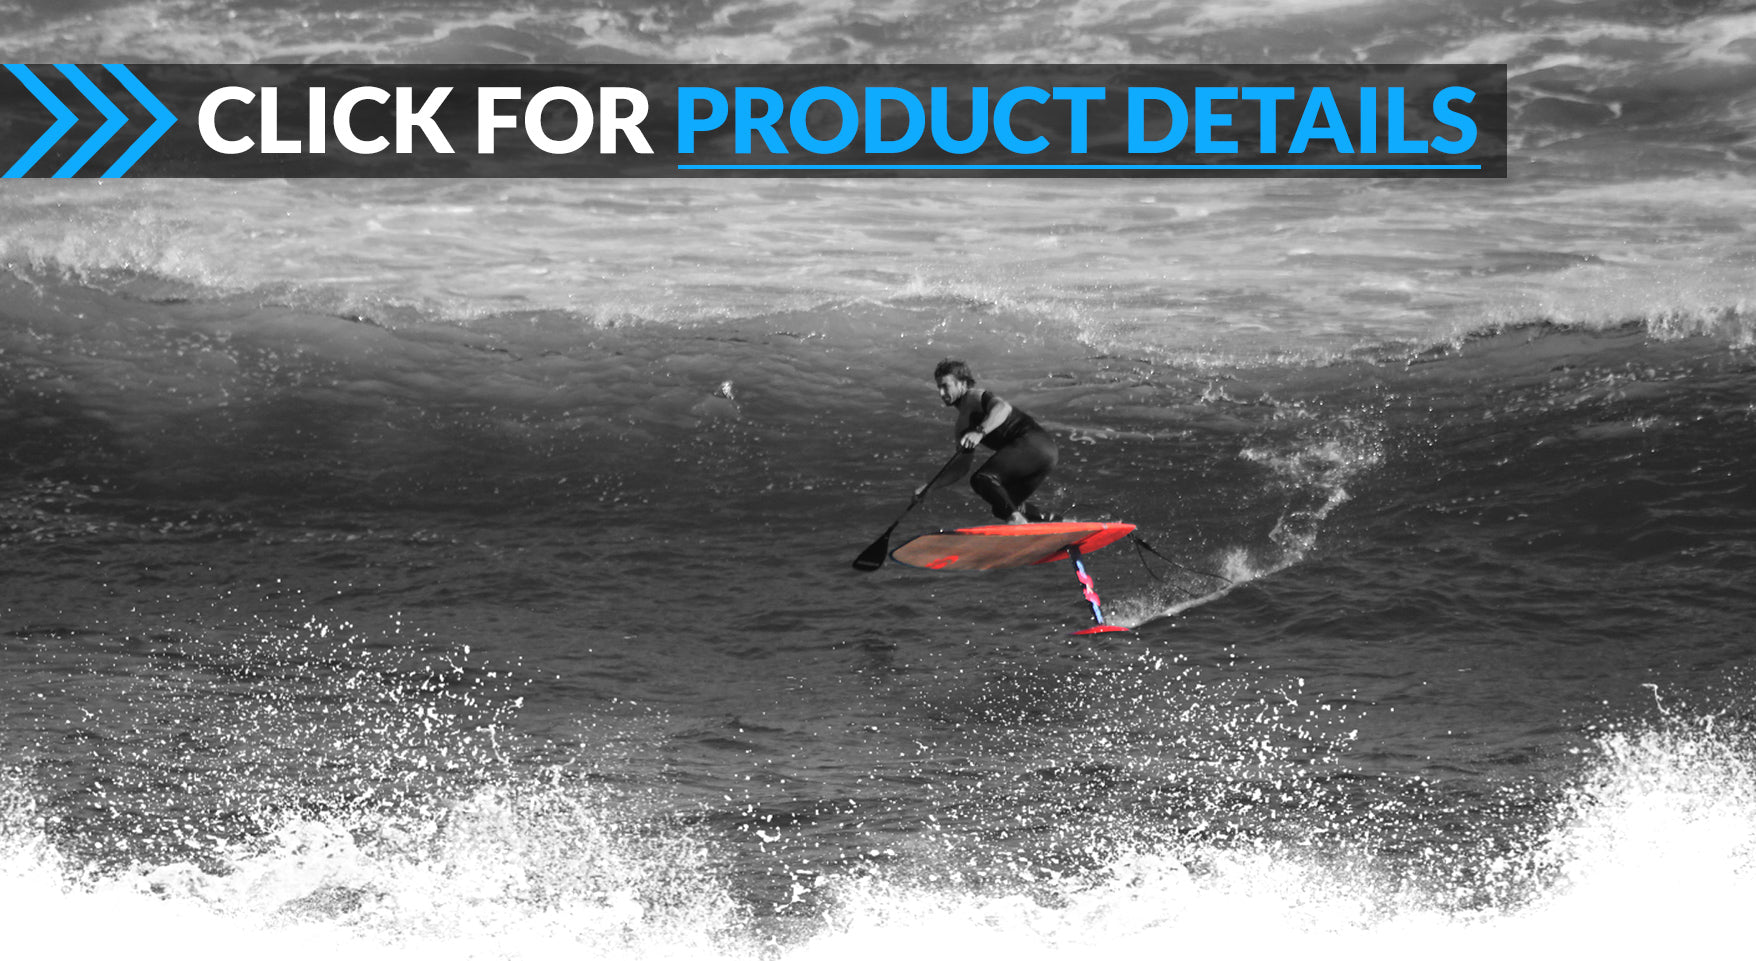 Foilboard Product Details